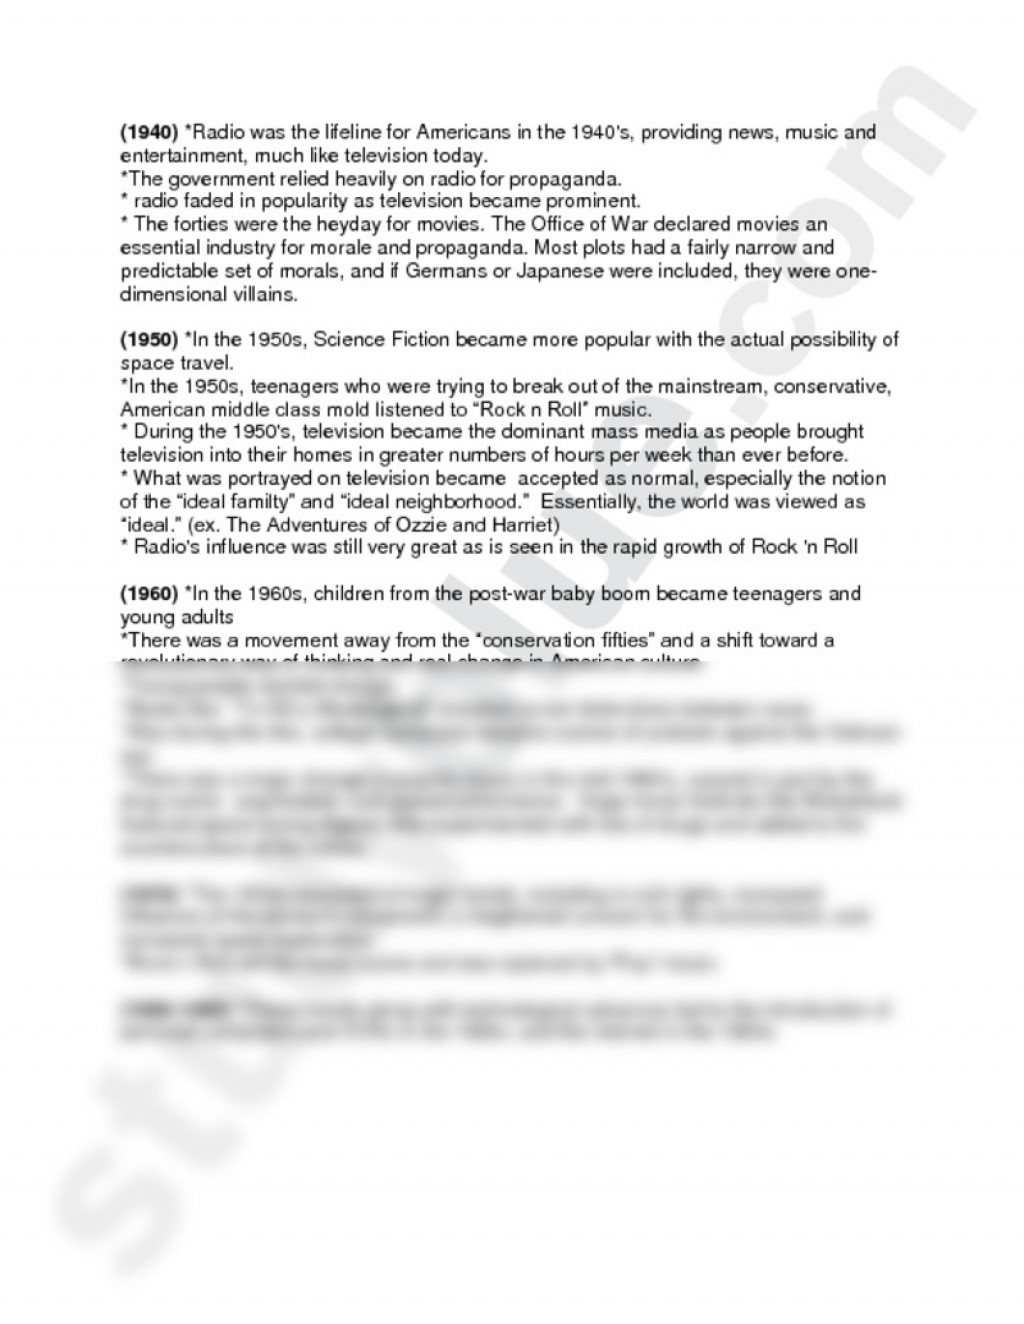 008 Preview0 Issa Final Exam Essay Answers Awesome Large